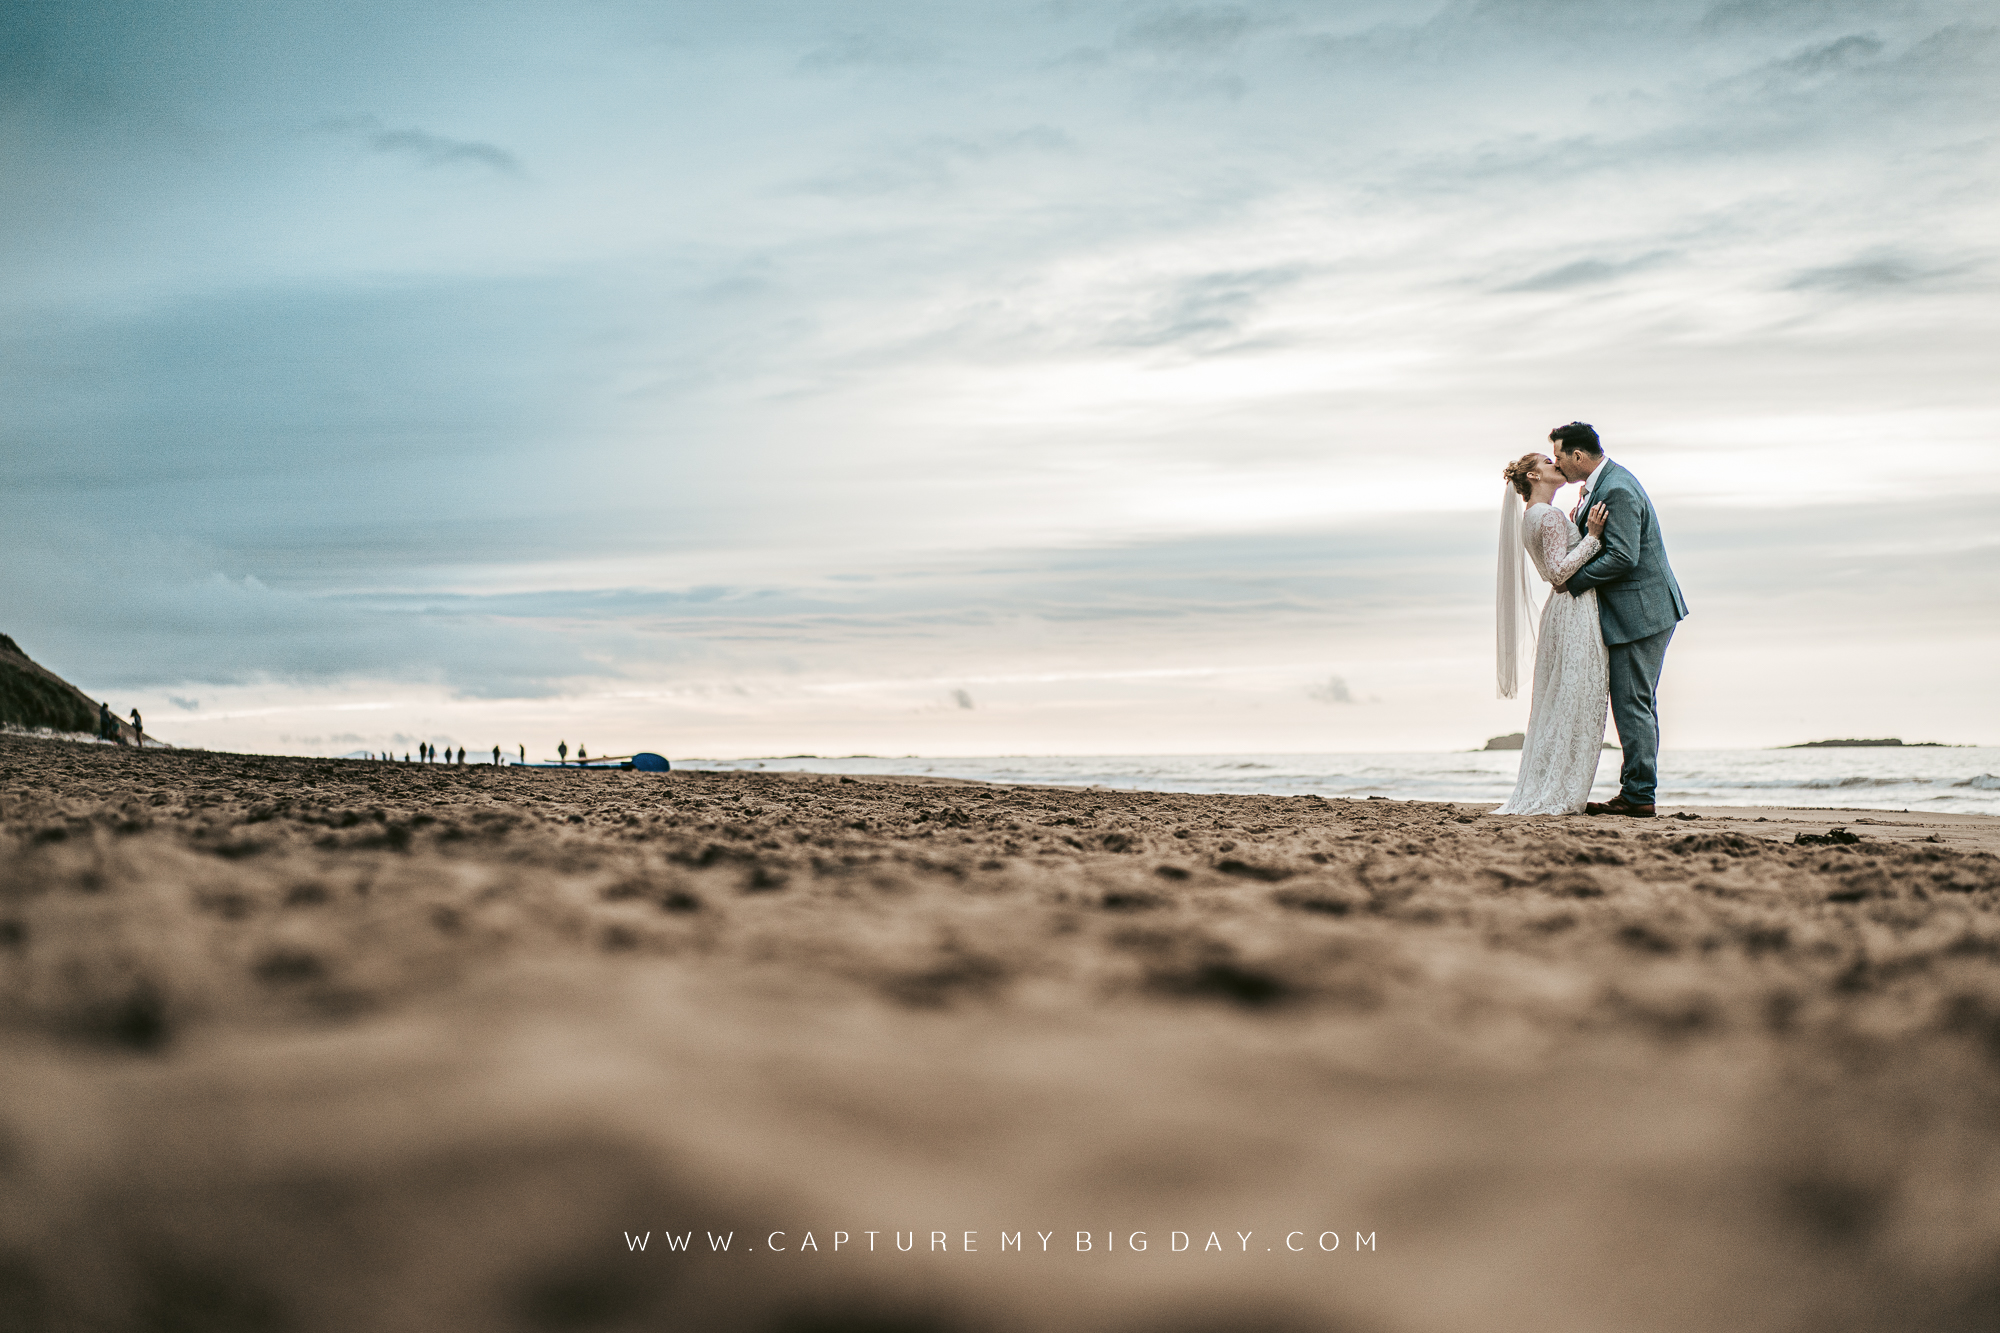 newlyweds kissing on the beach